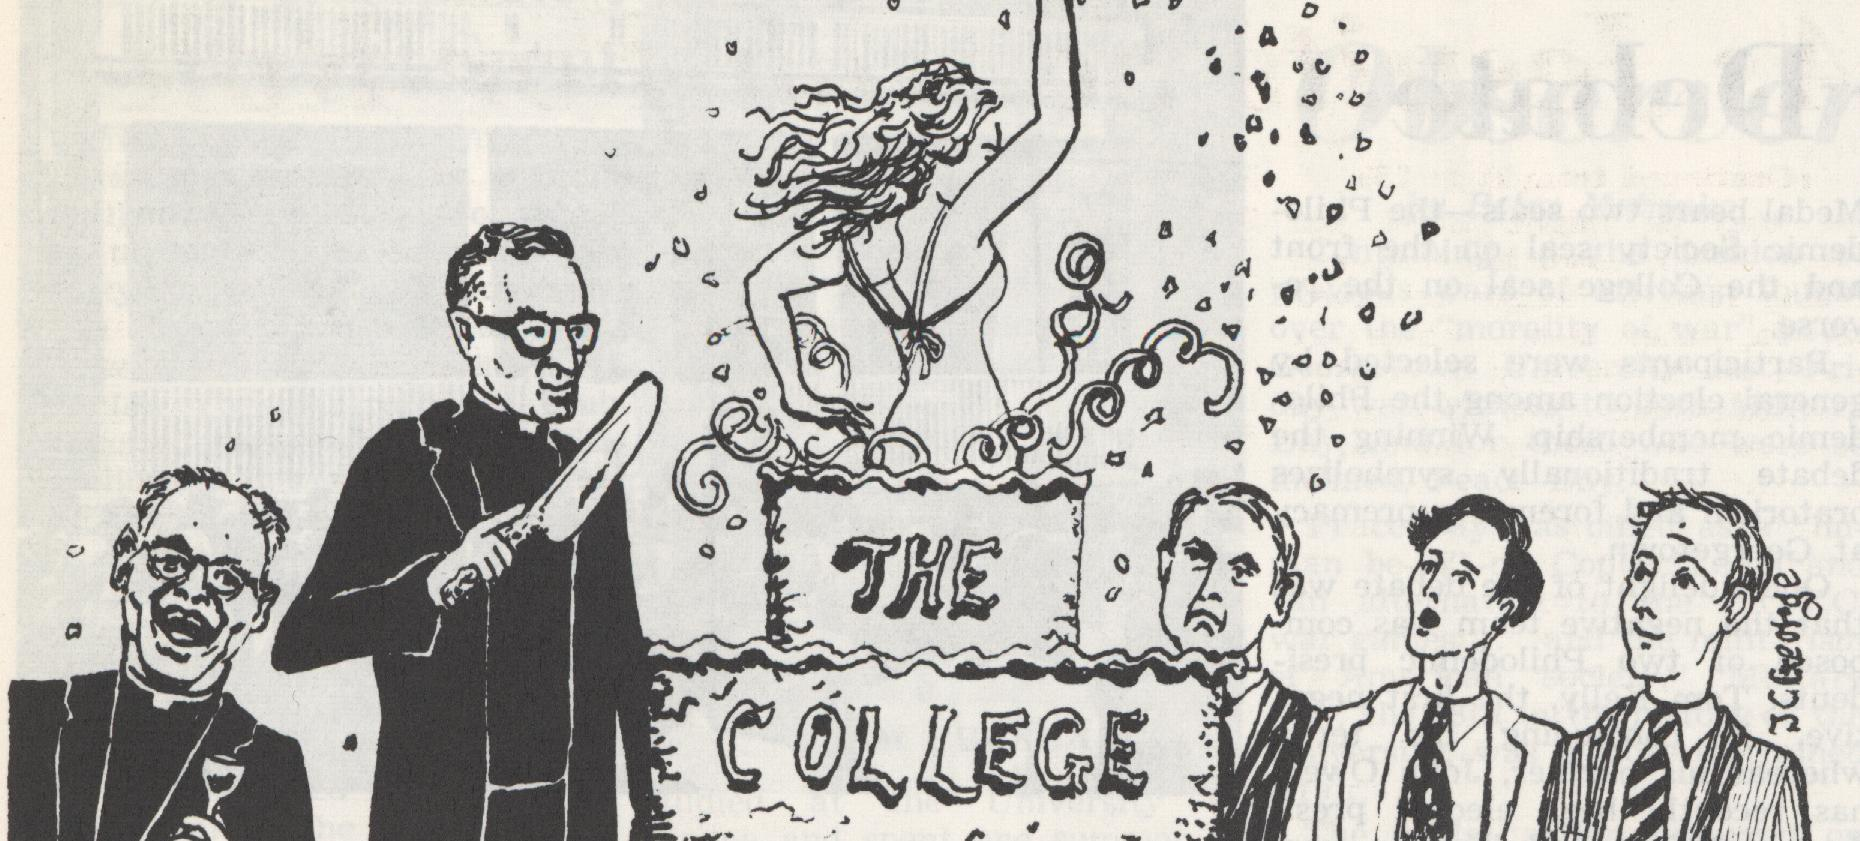 Cartoon from a 1968 issue of The Hoya, depicting a female student jumping out of a cake.